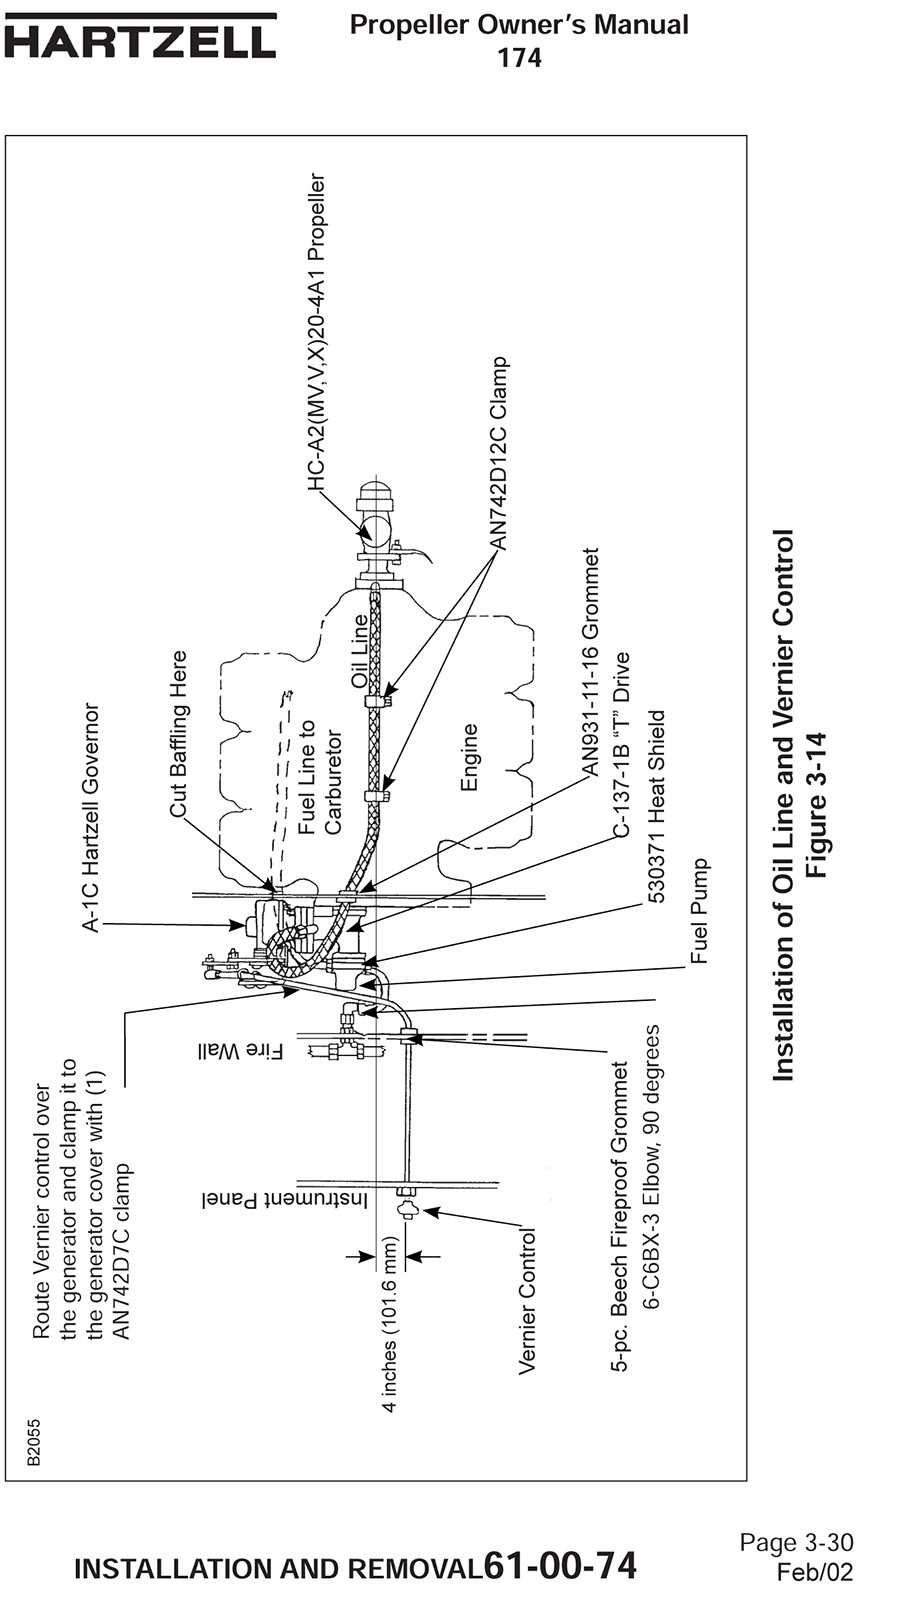 Prop Owners Manual Manuals Grommet 3 1 Engine Diagram Hartzell 2010 Page82